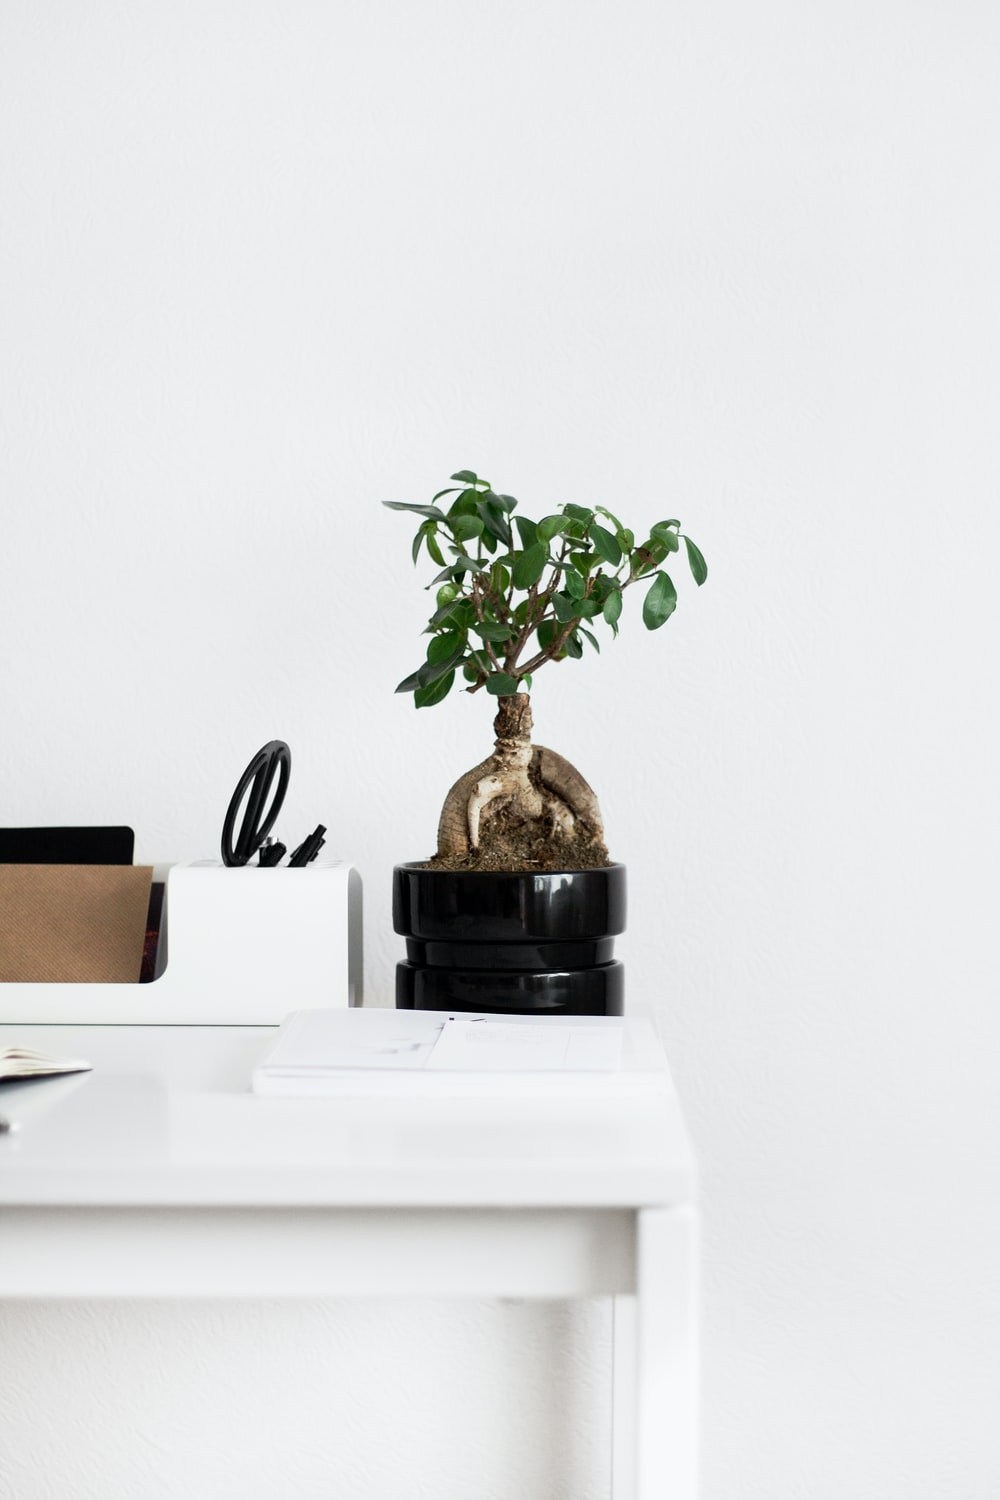 Bonsai in a white room photo by sarah dorweiler sarahdorweiler on a small bonsai tree in a black flowerpot on a white table mightylinksfo